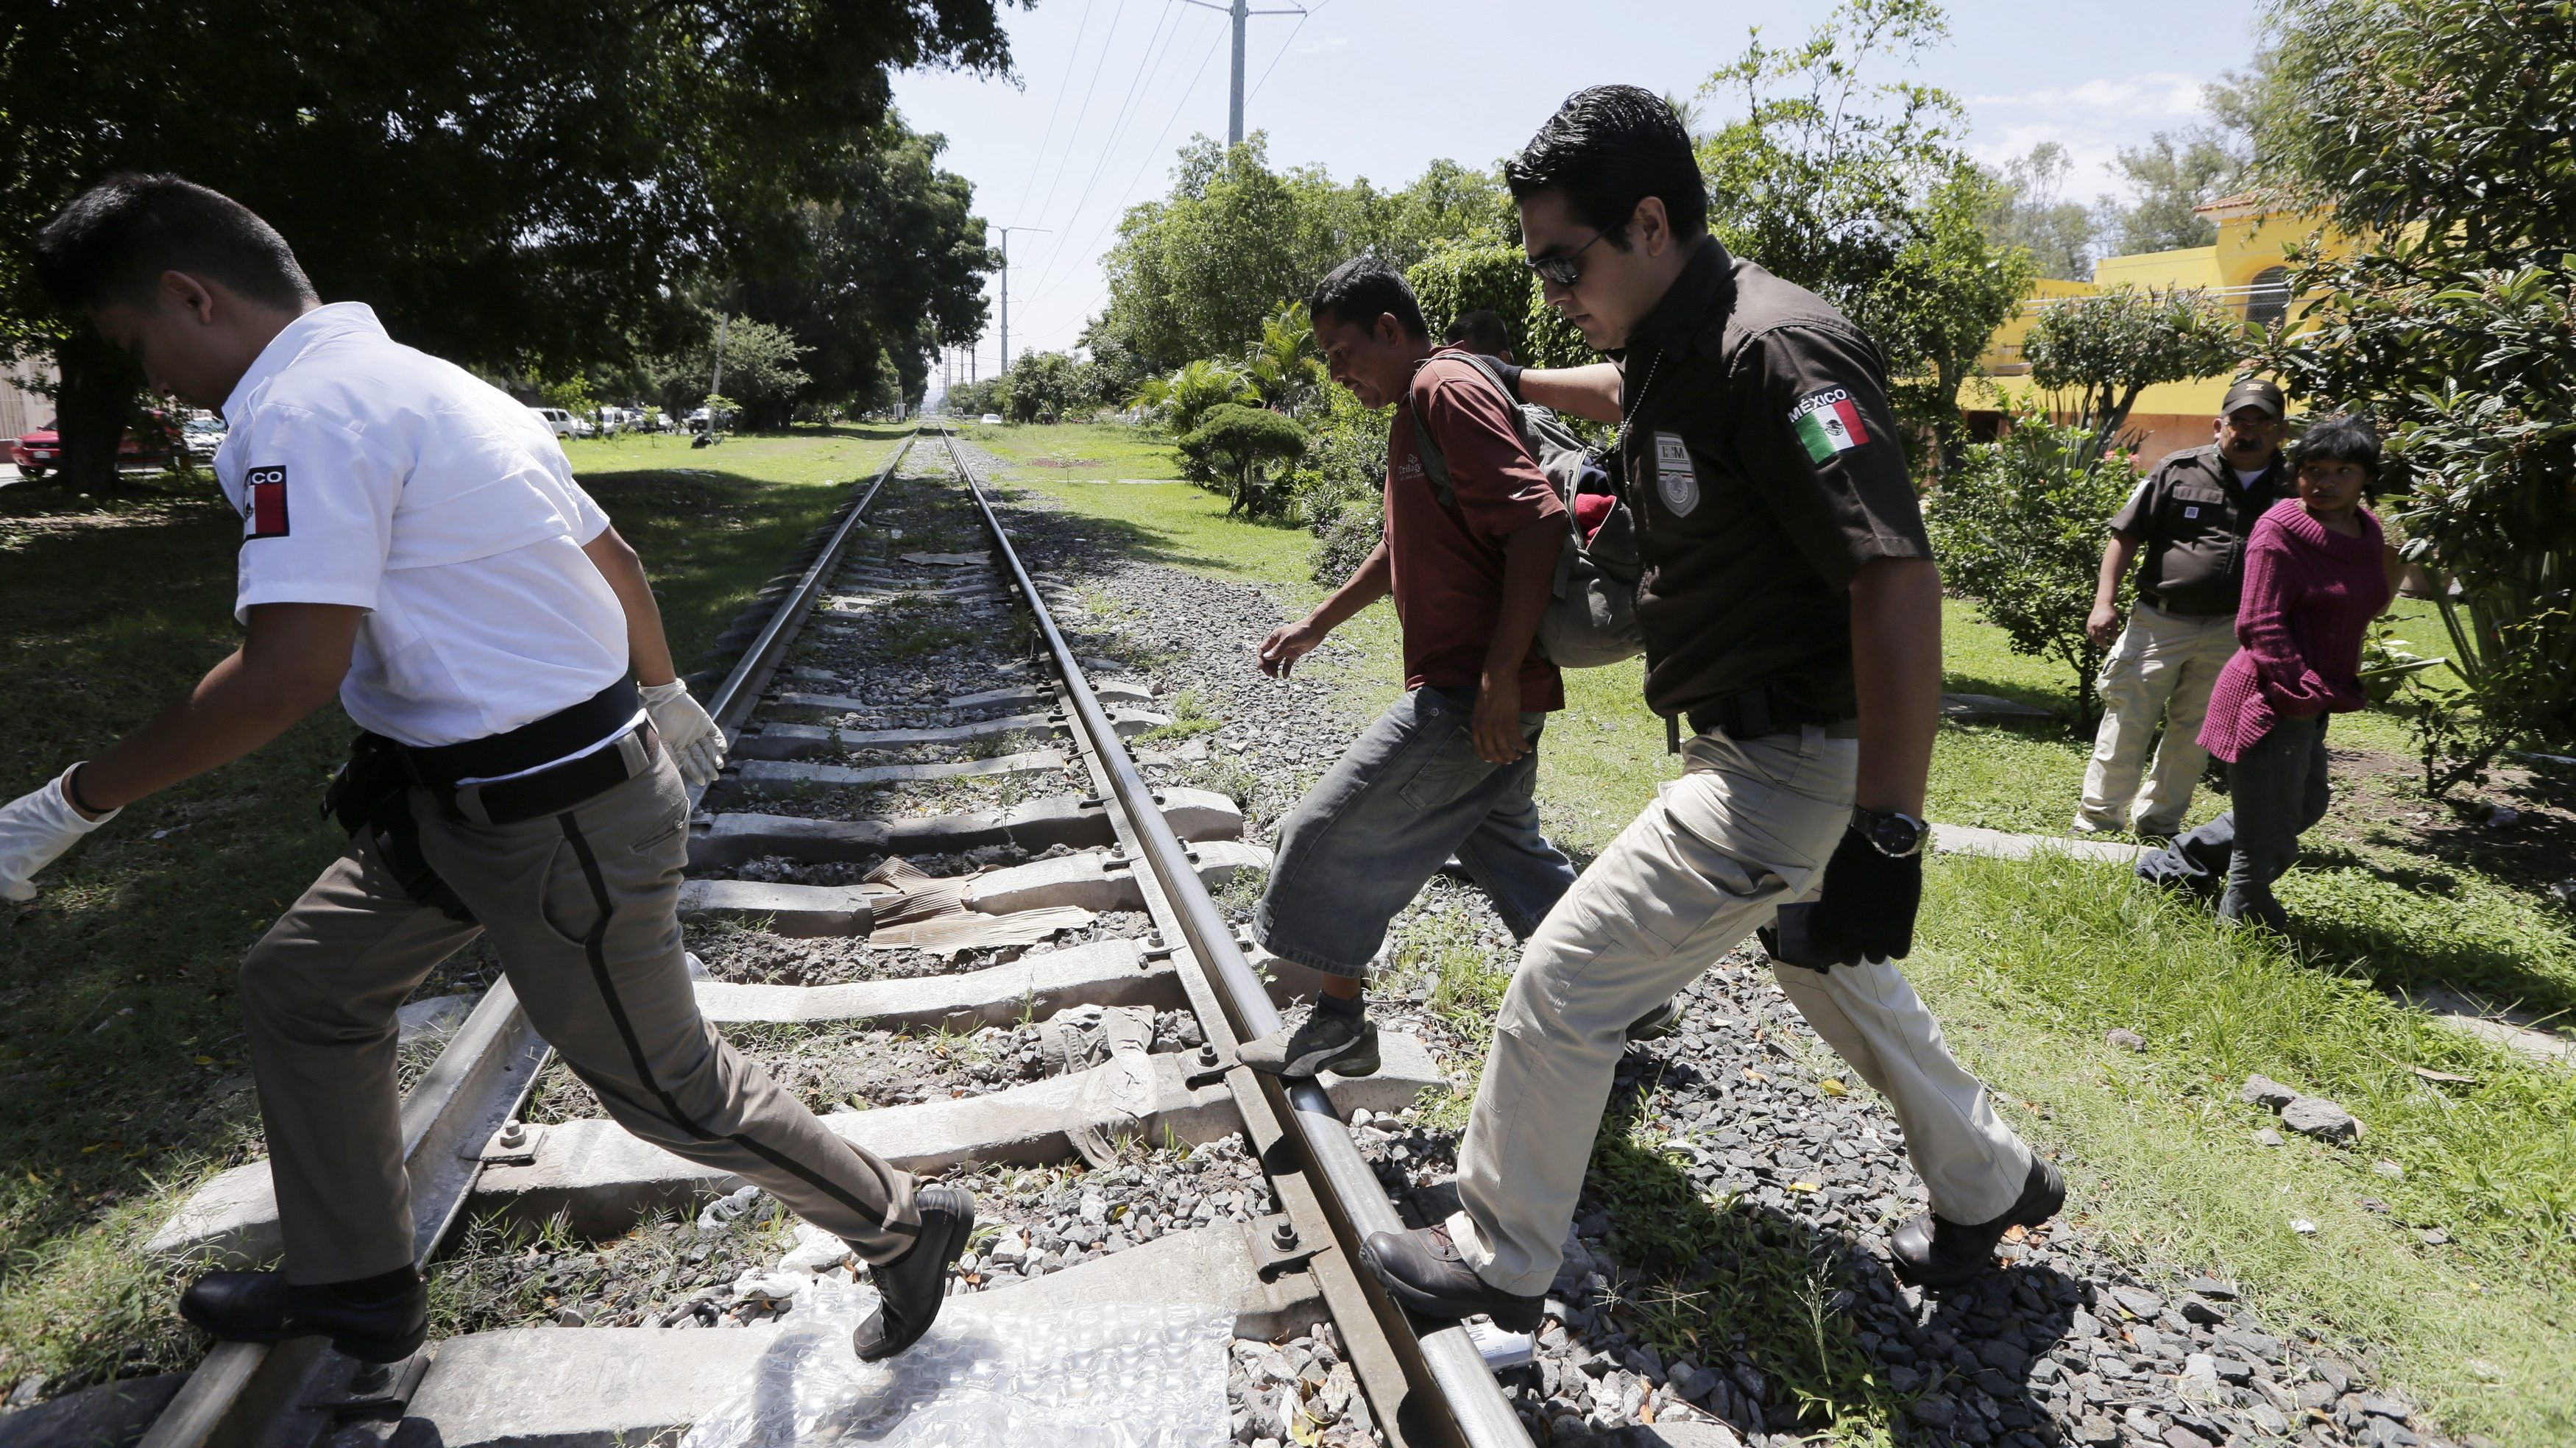 Mexican immigration officers detain undocumented immigrants